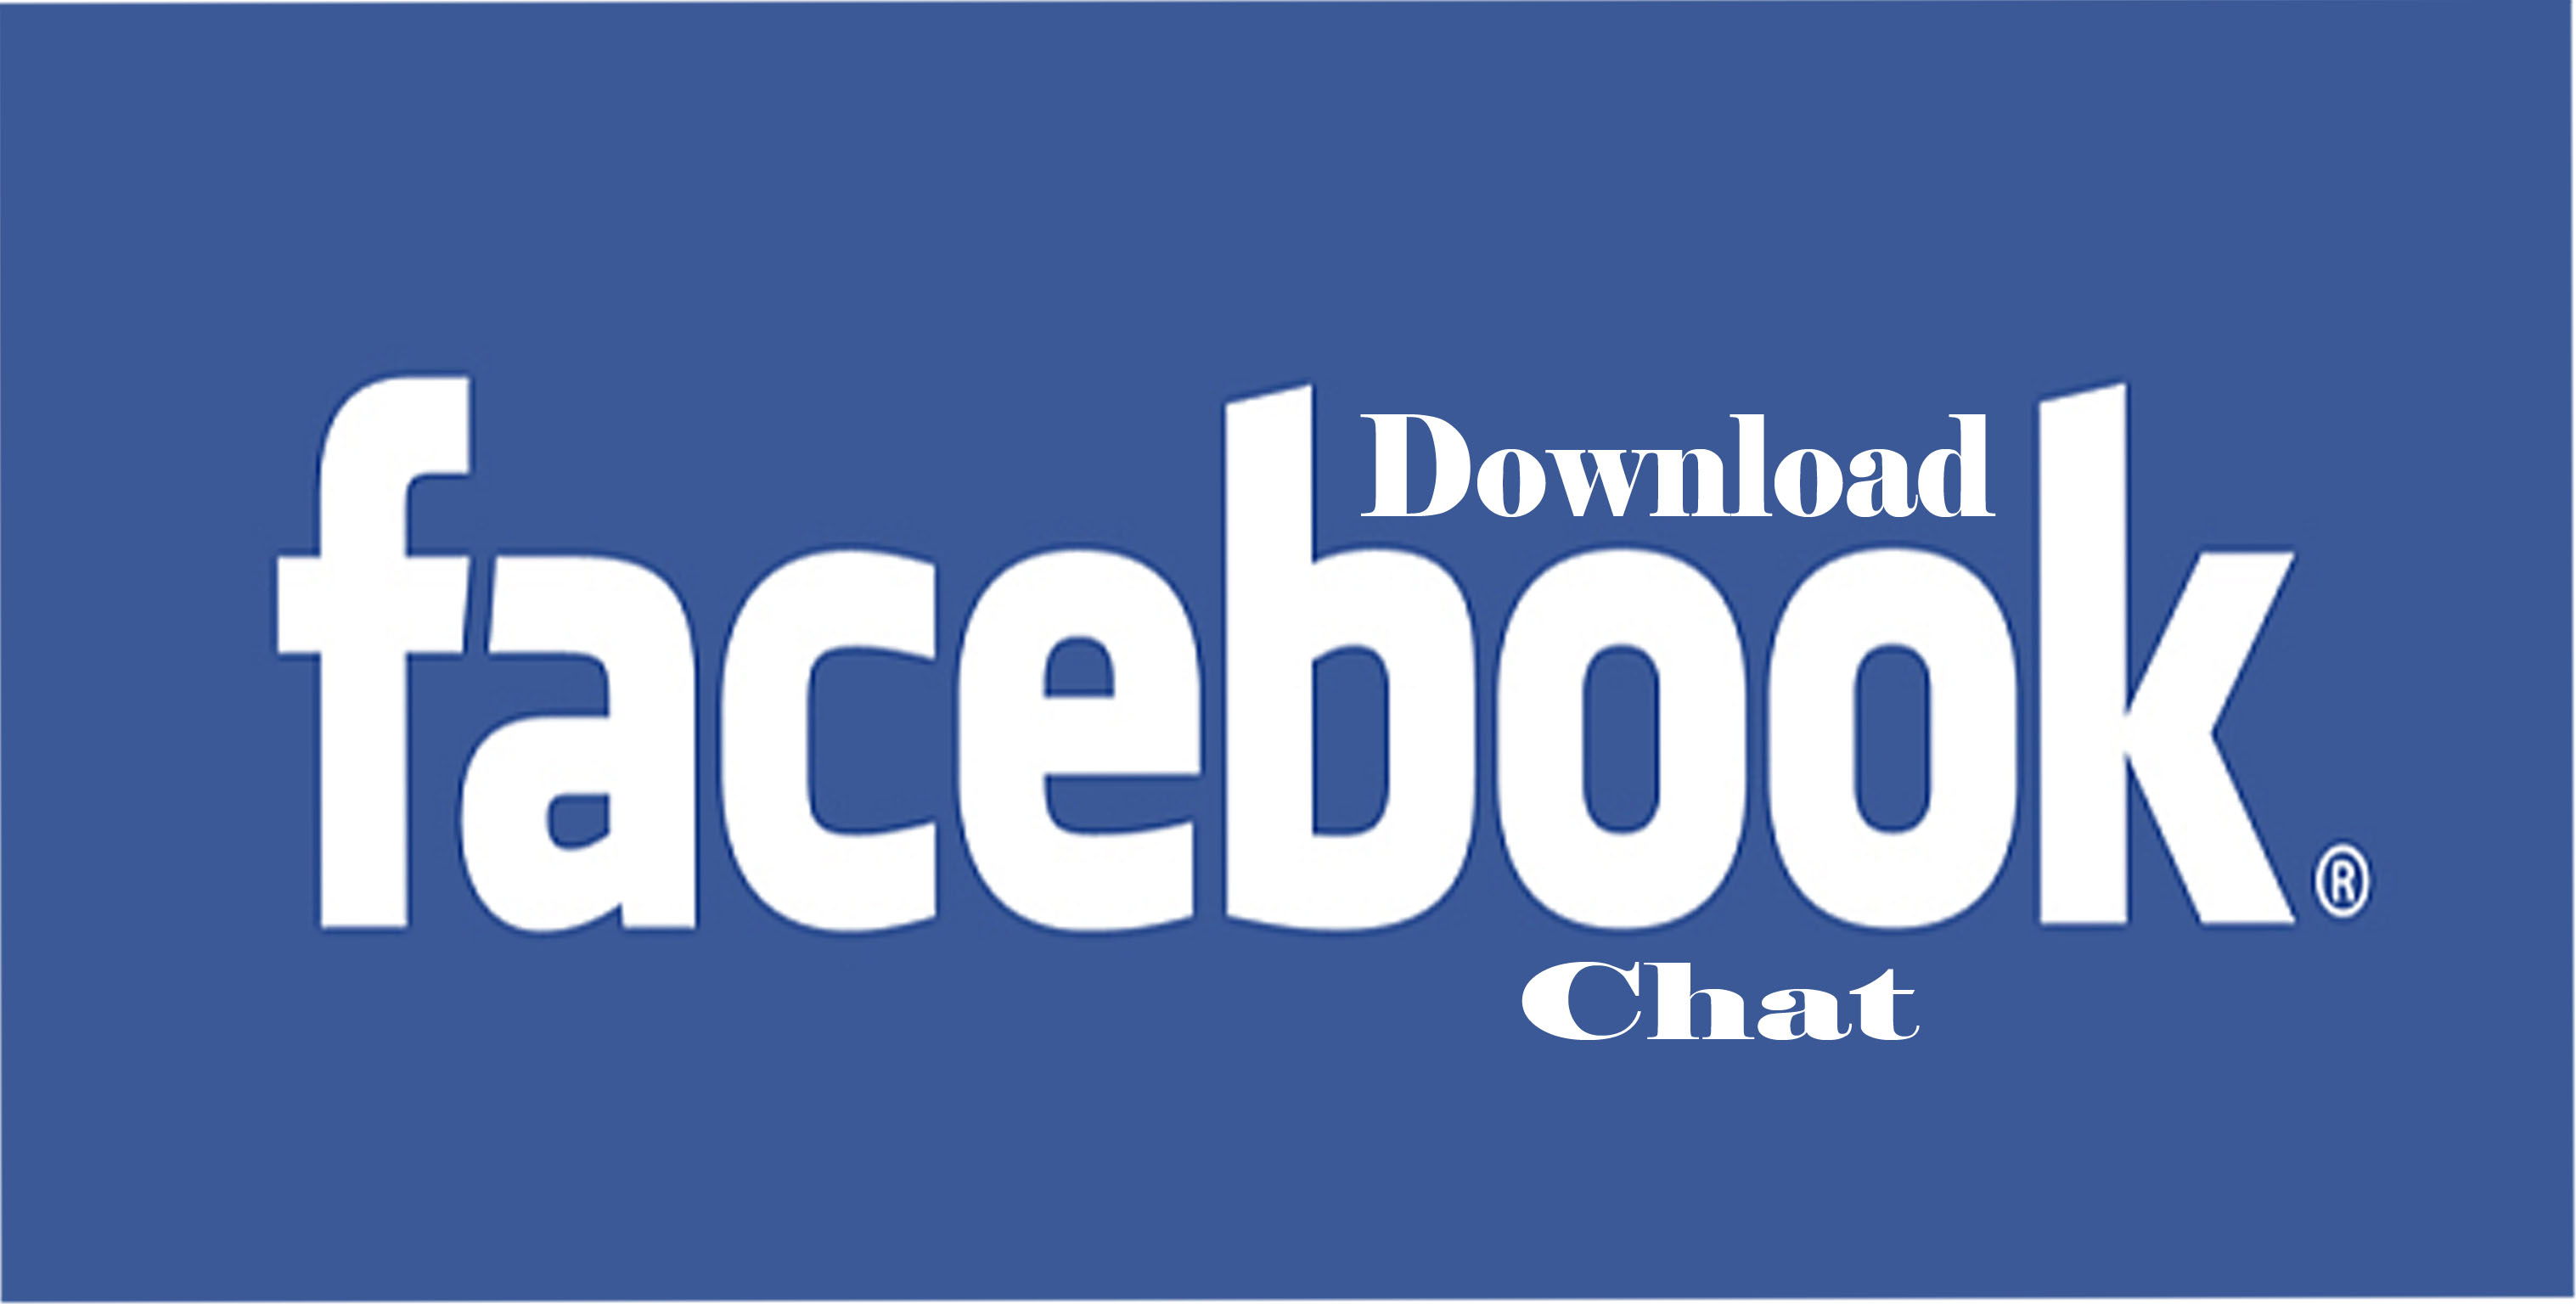 Download Facebook Chat - Facebook Messenger